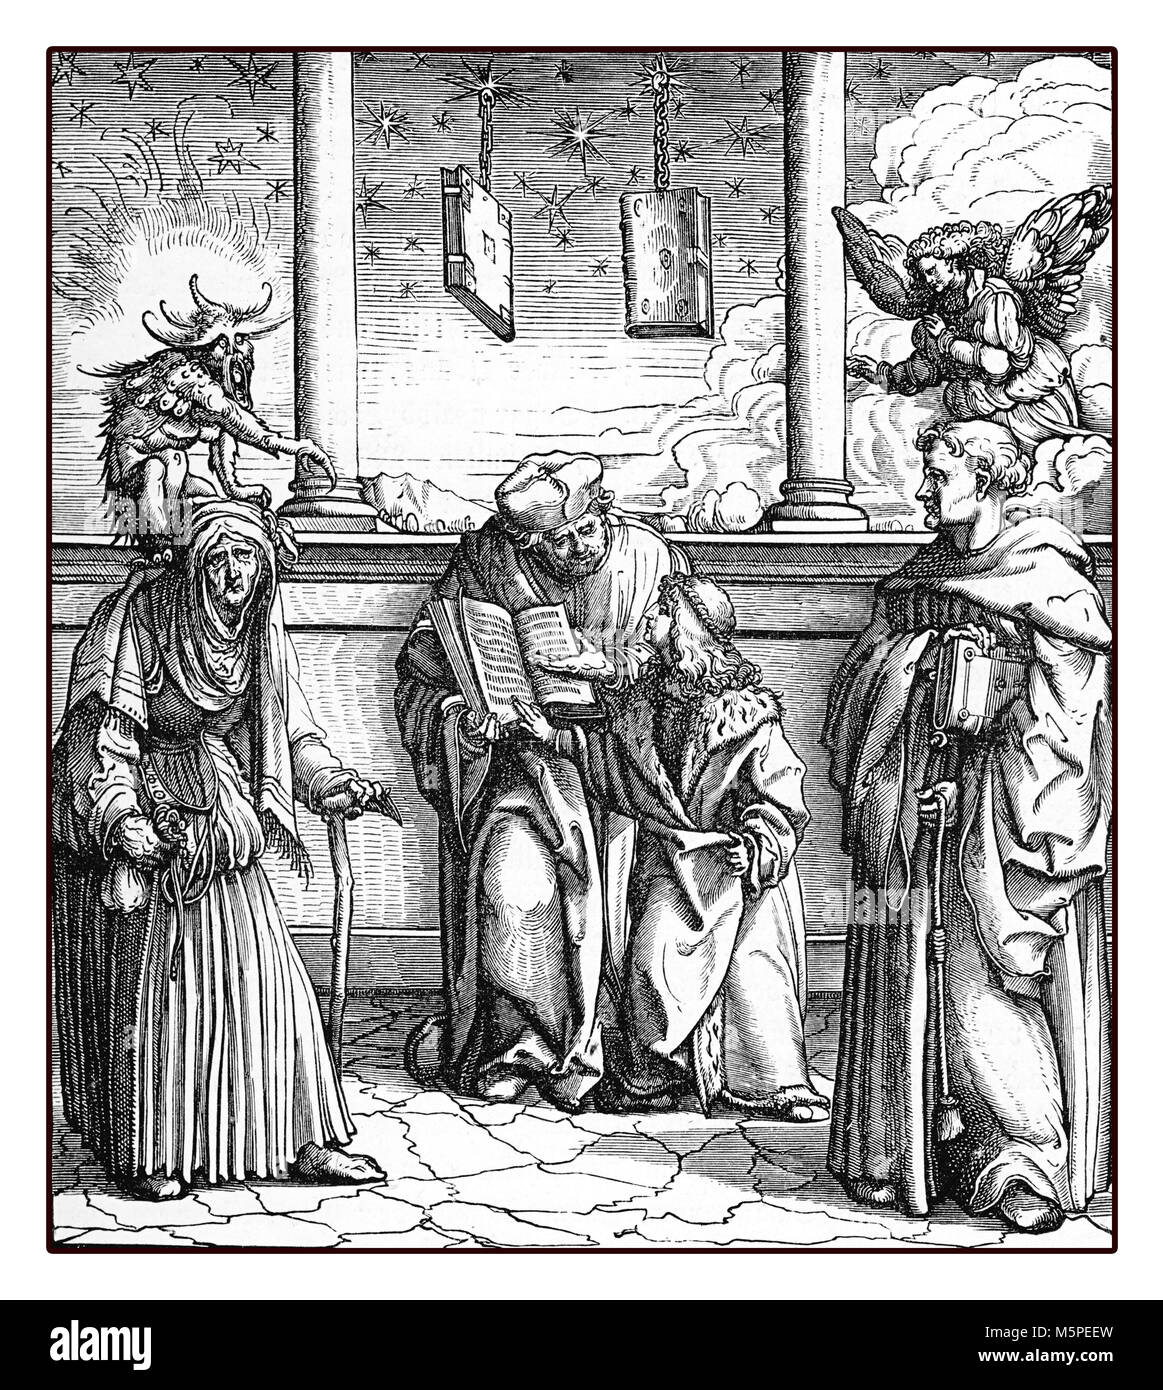 Holy Roman Emperor Maximilian I learns the alchemy of gold makers, reproduction from an engraving of Hans Burgkmair, - Stock Image